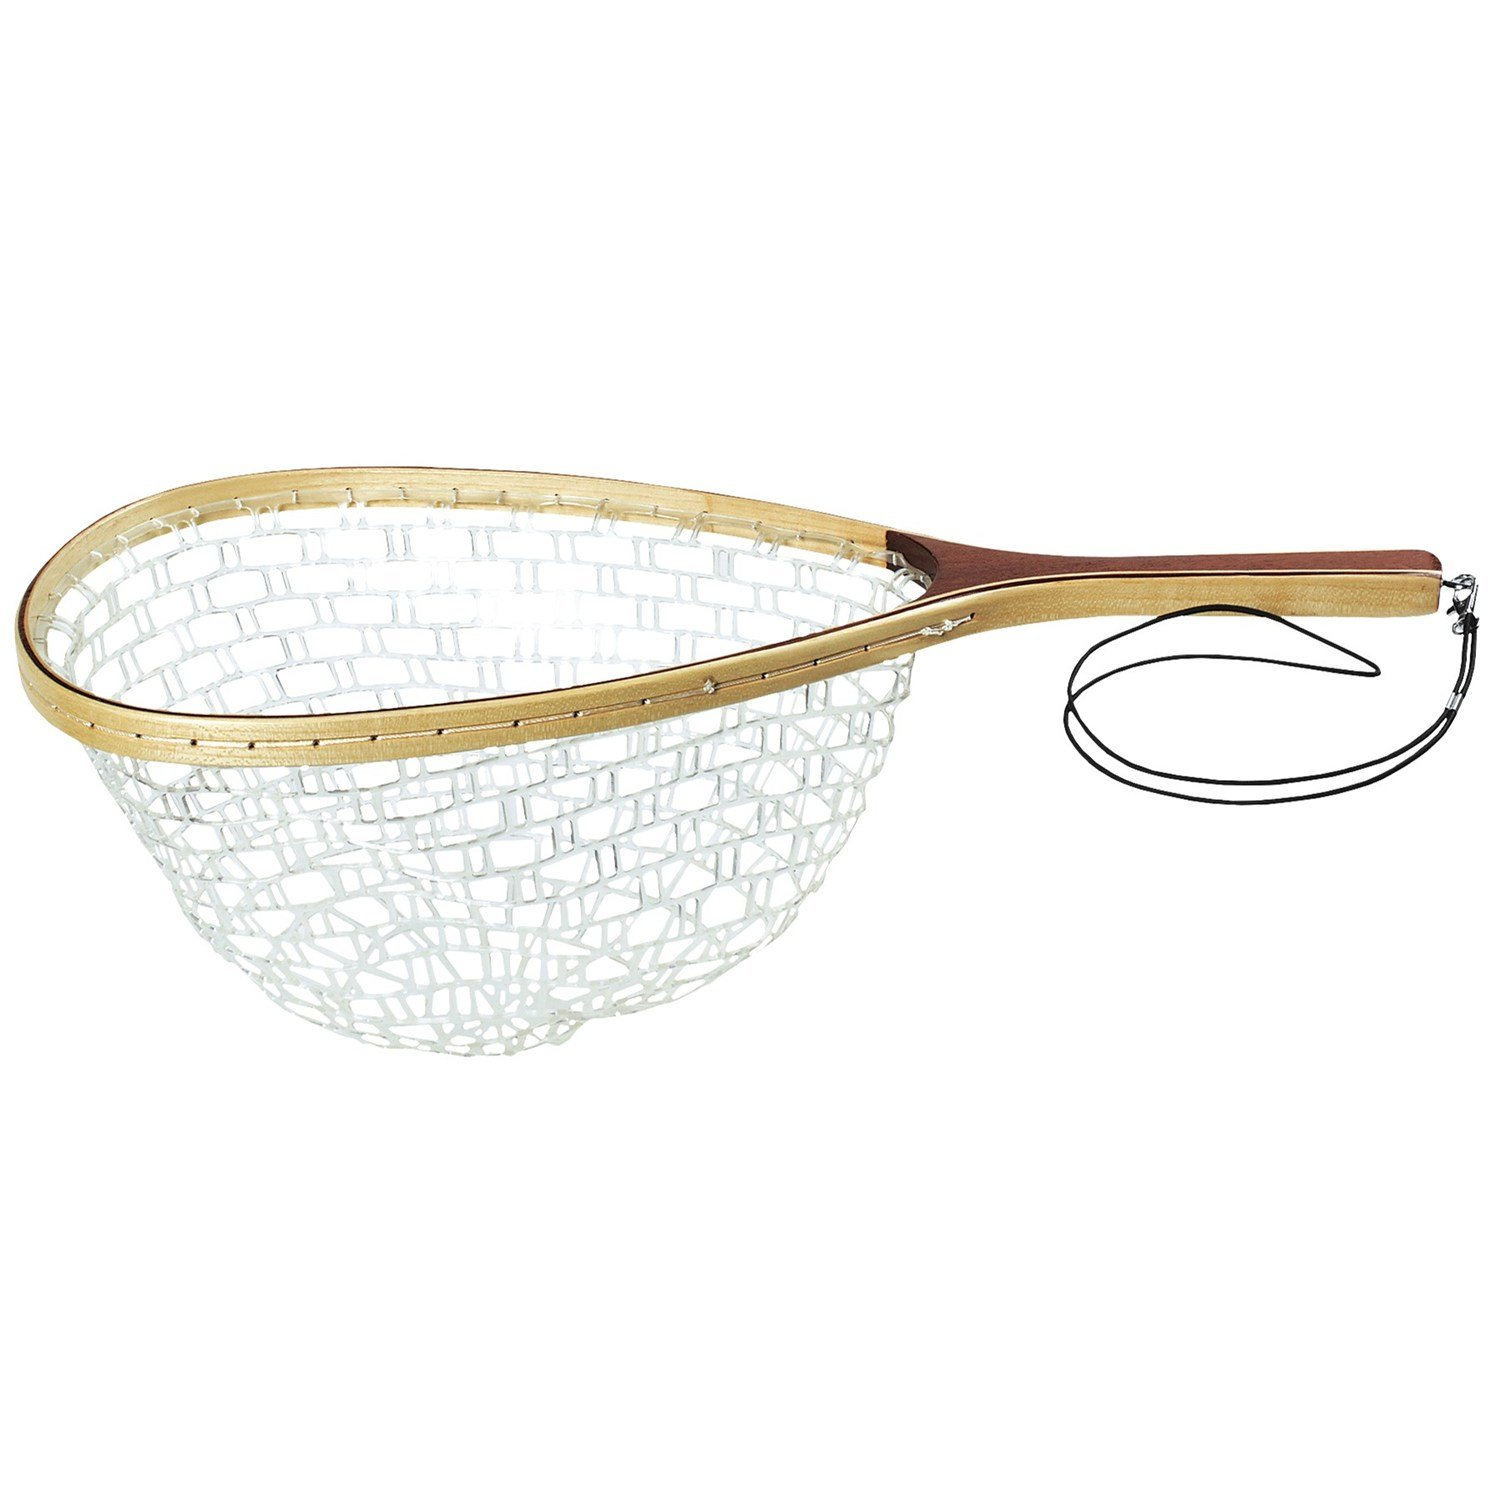 The best fishing gifts for men who love the sport gift for Fly fishing gifts